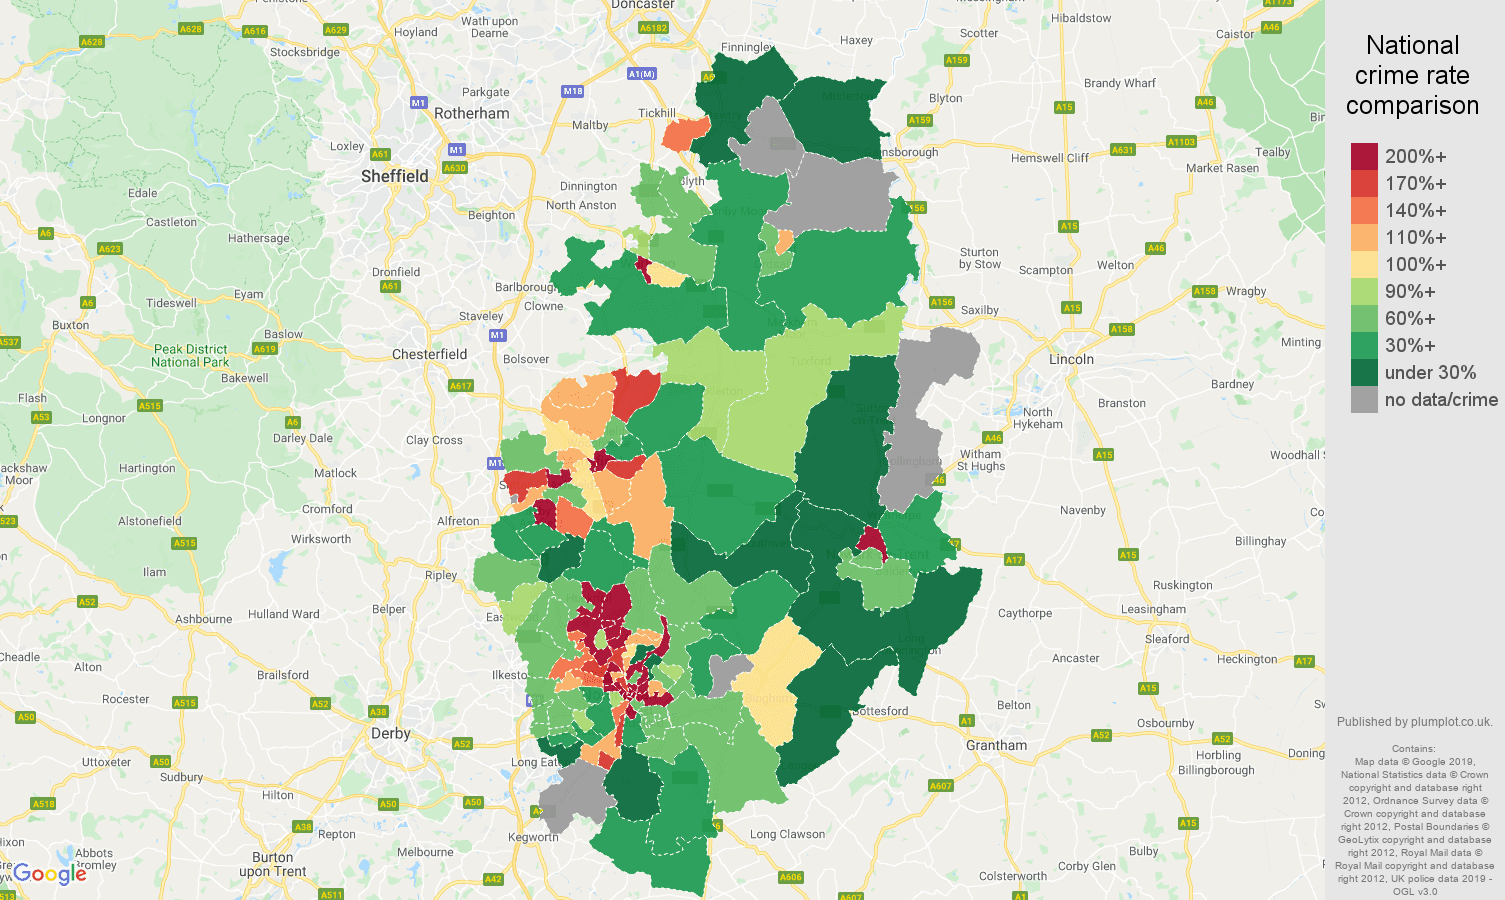 Nottinghamshire possession of weapons crime rate comparison map